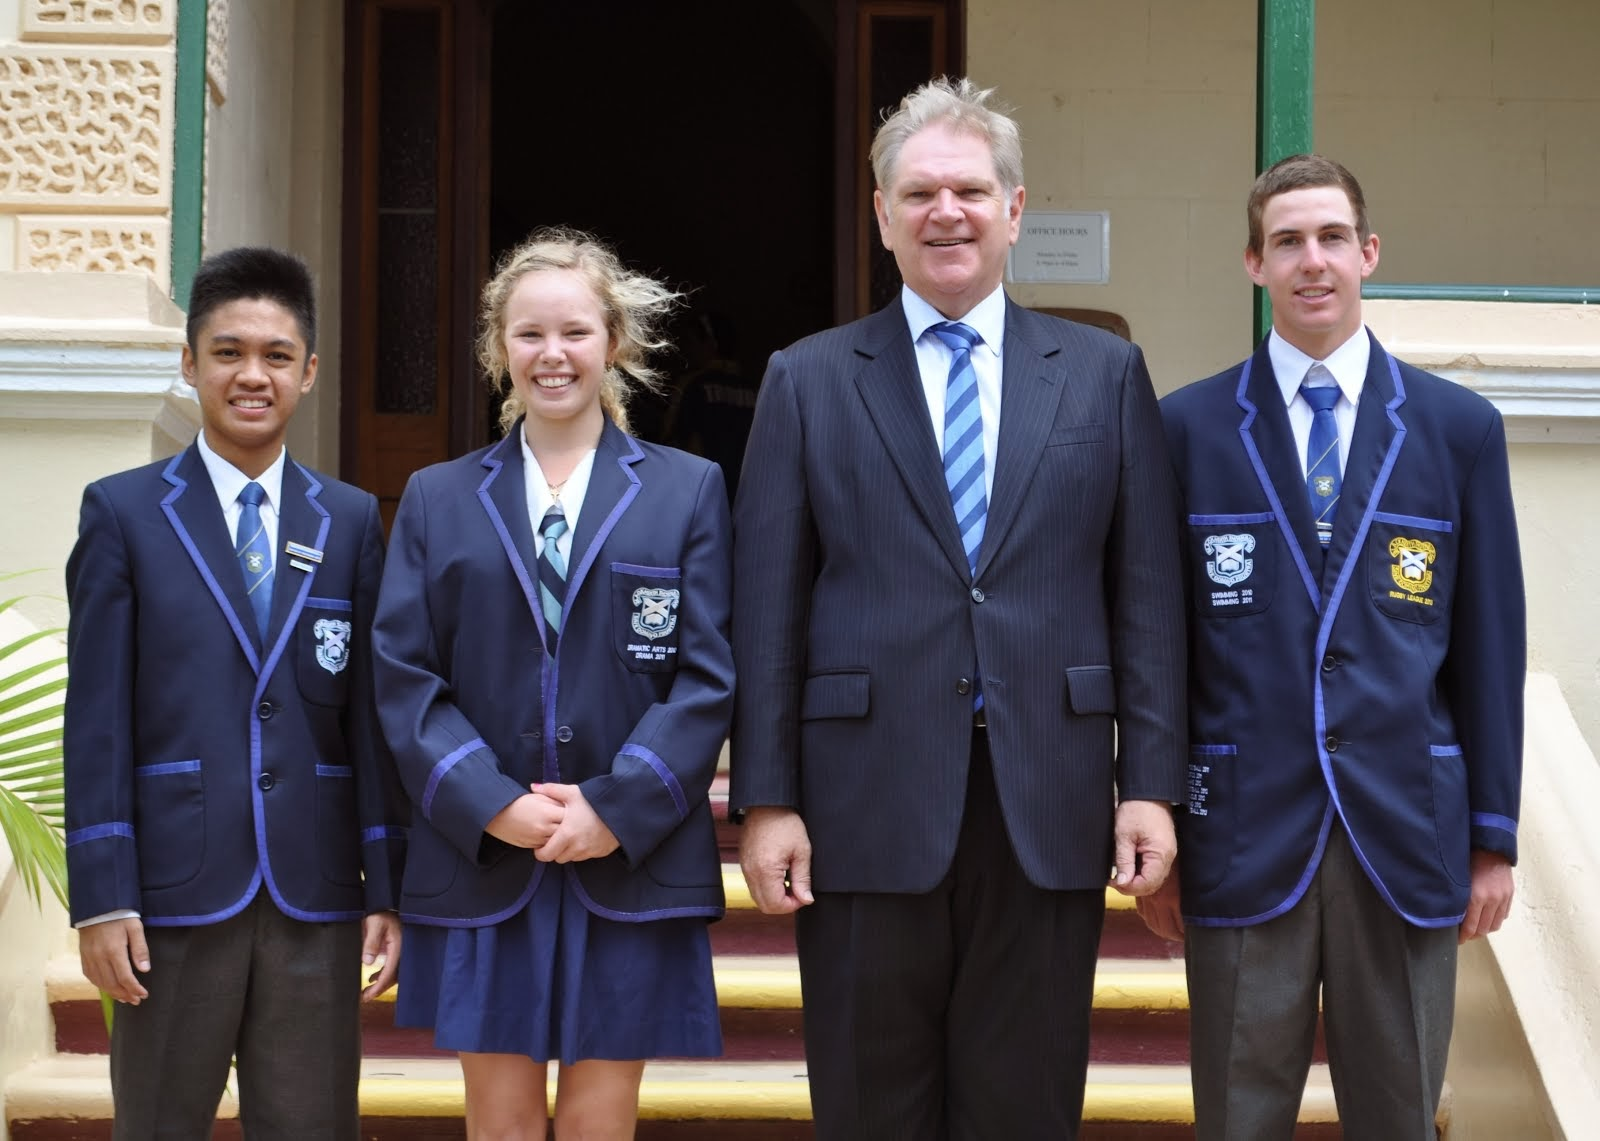 2014 Captains and Prefect with Mr Fairbairn